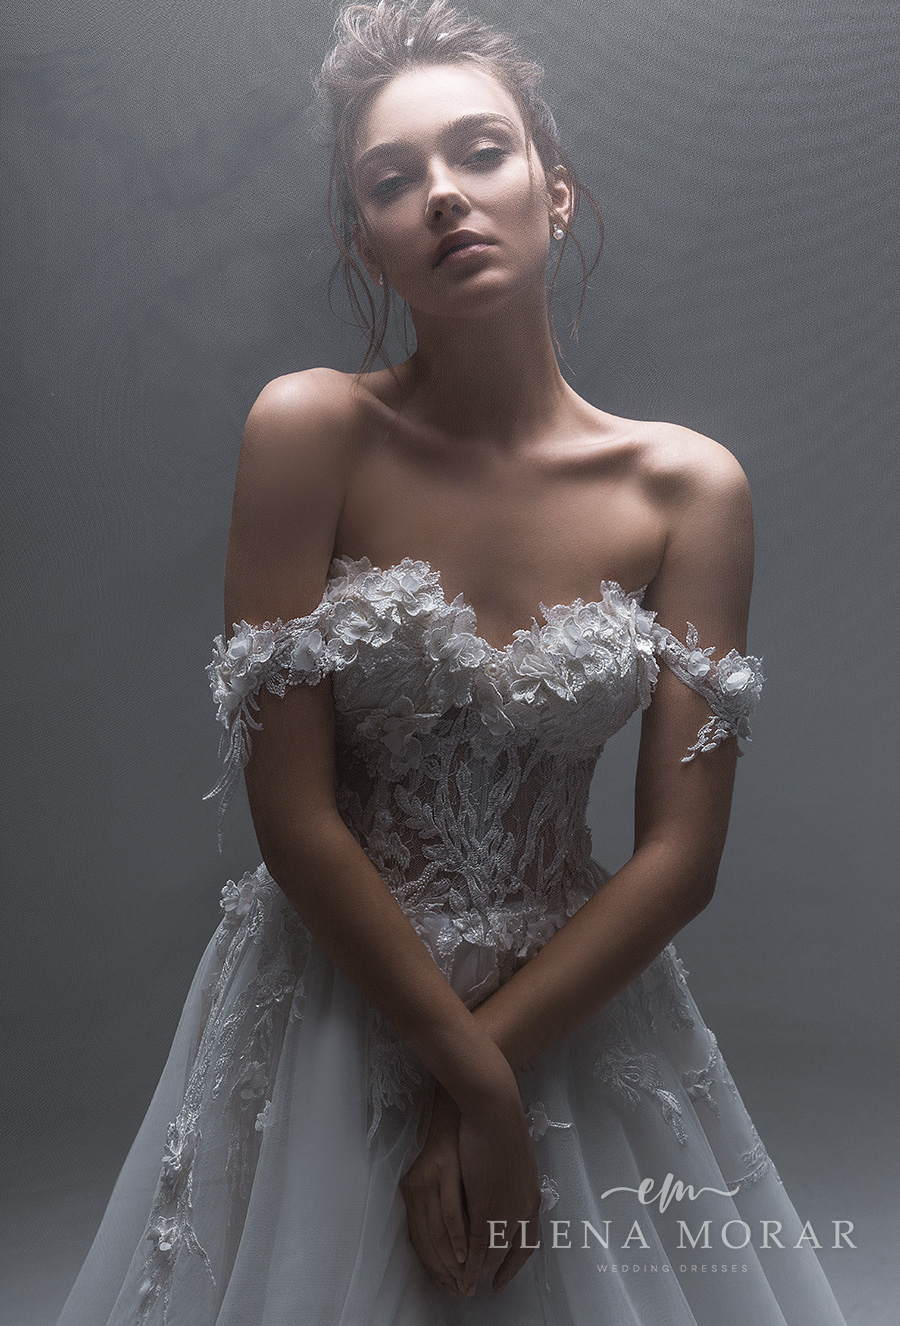 elena morar 2021 desert rose bridal off the shoulder sweetheart neckline heavily embellished bodice romantic a line wedding dress corset back chapel train (039) mv zv